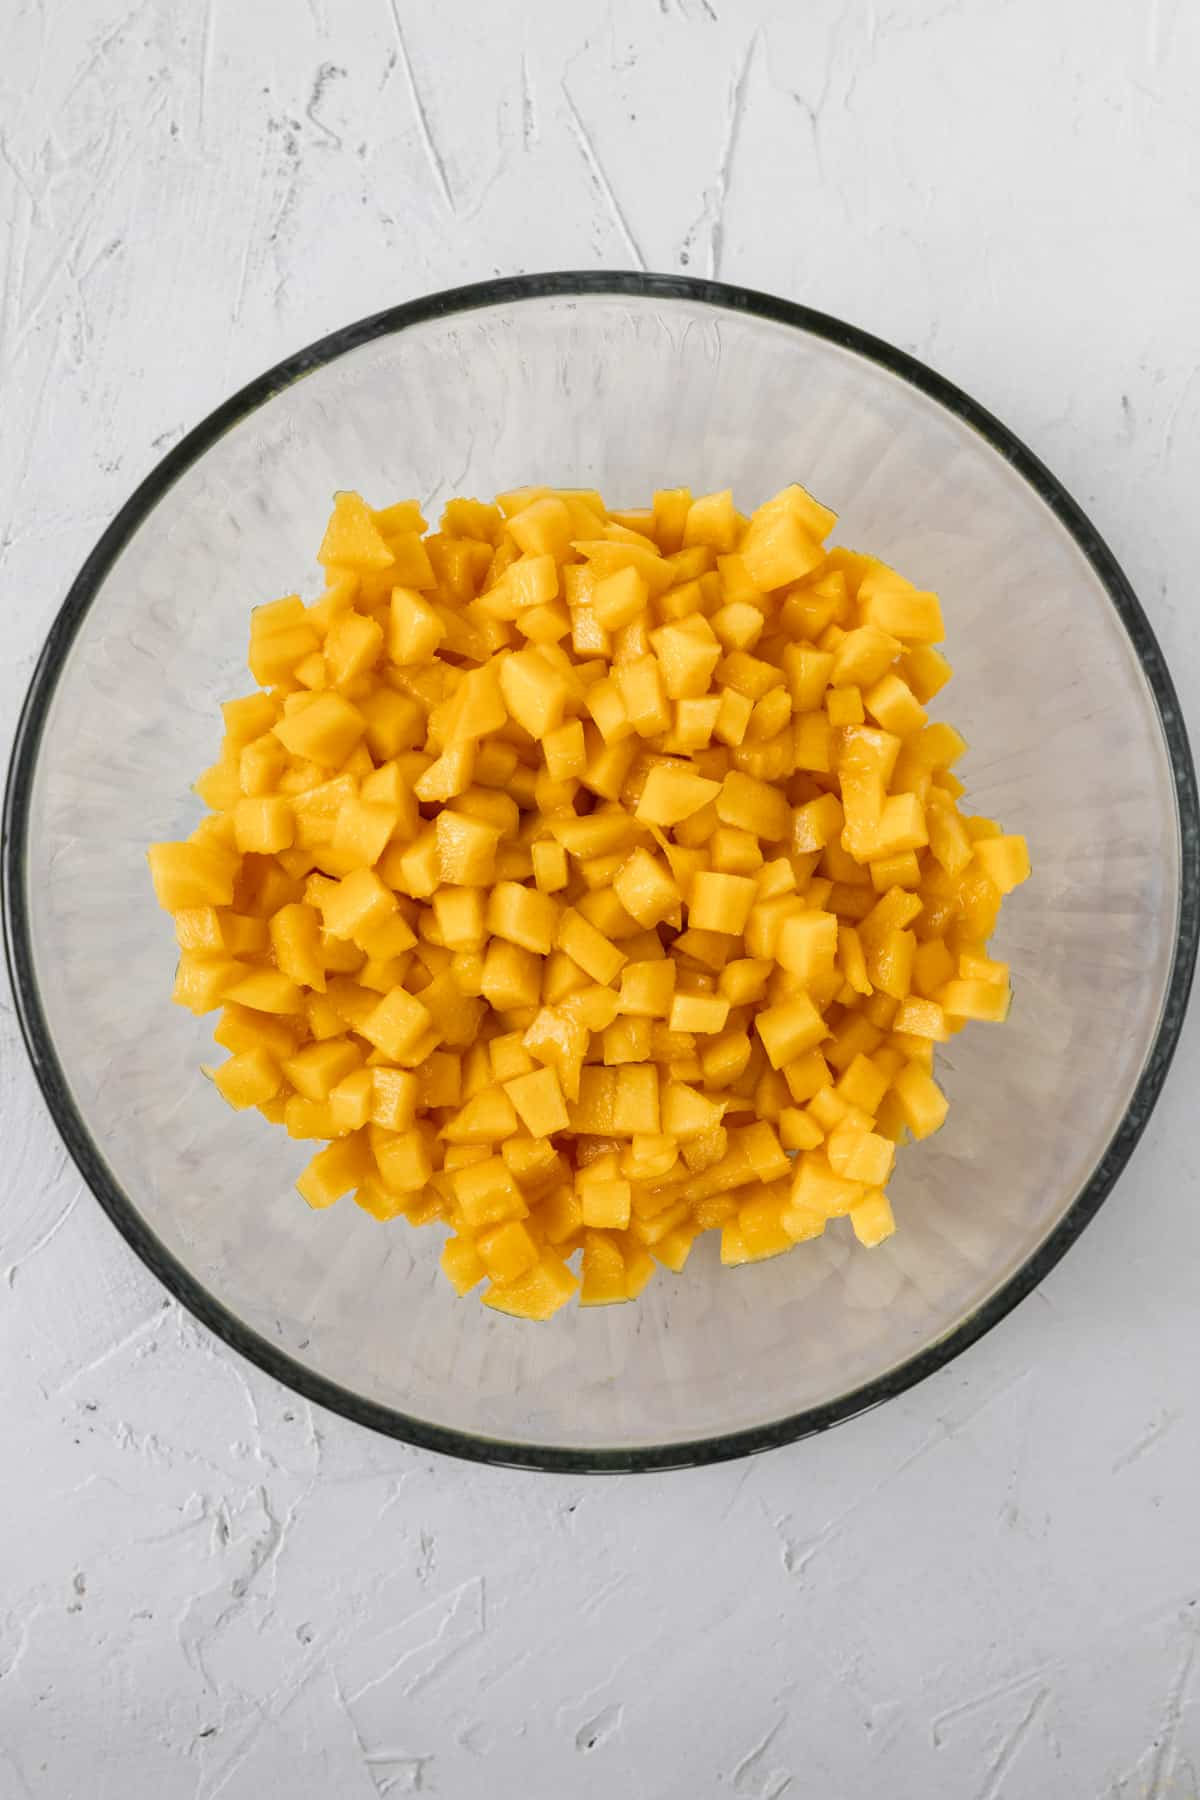 Cubed mango in a glass bowl.